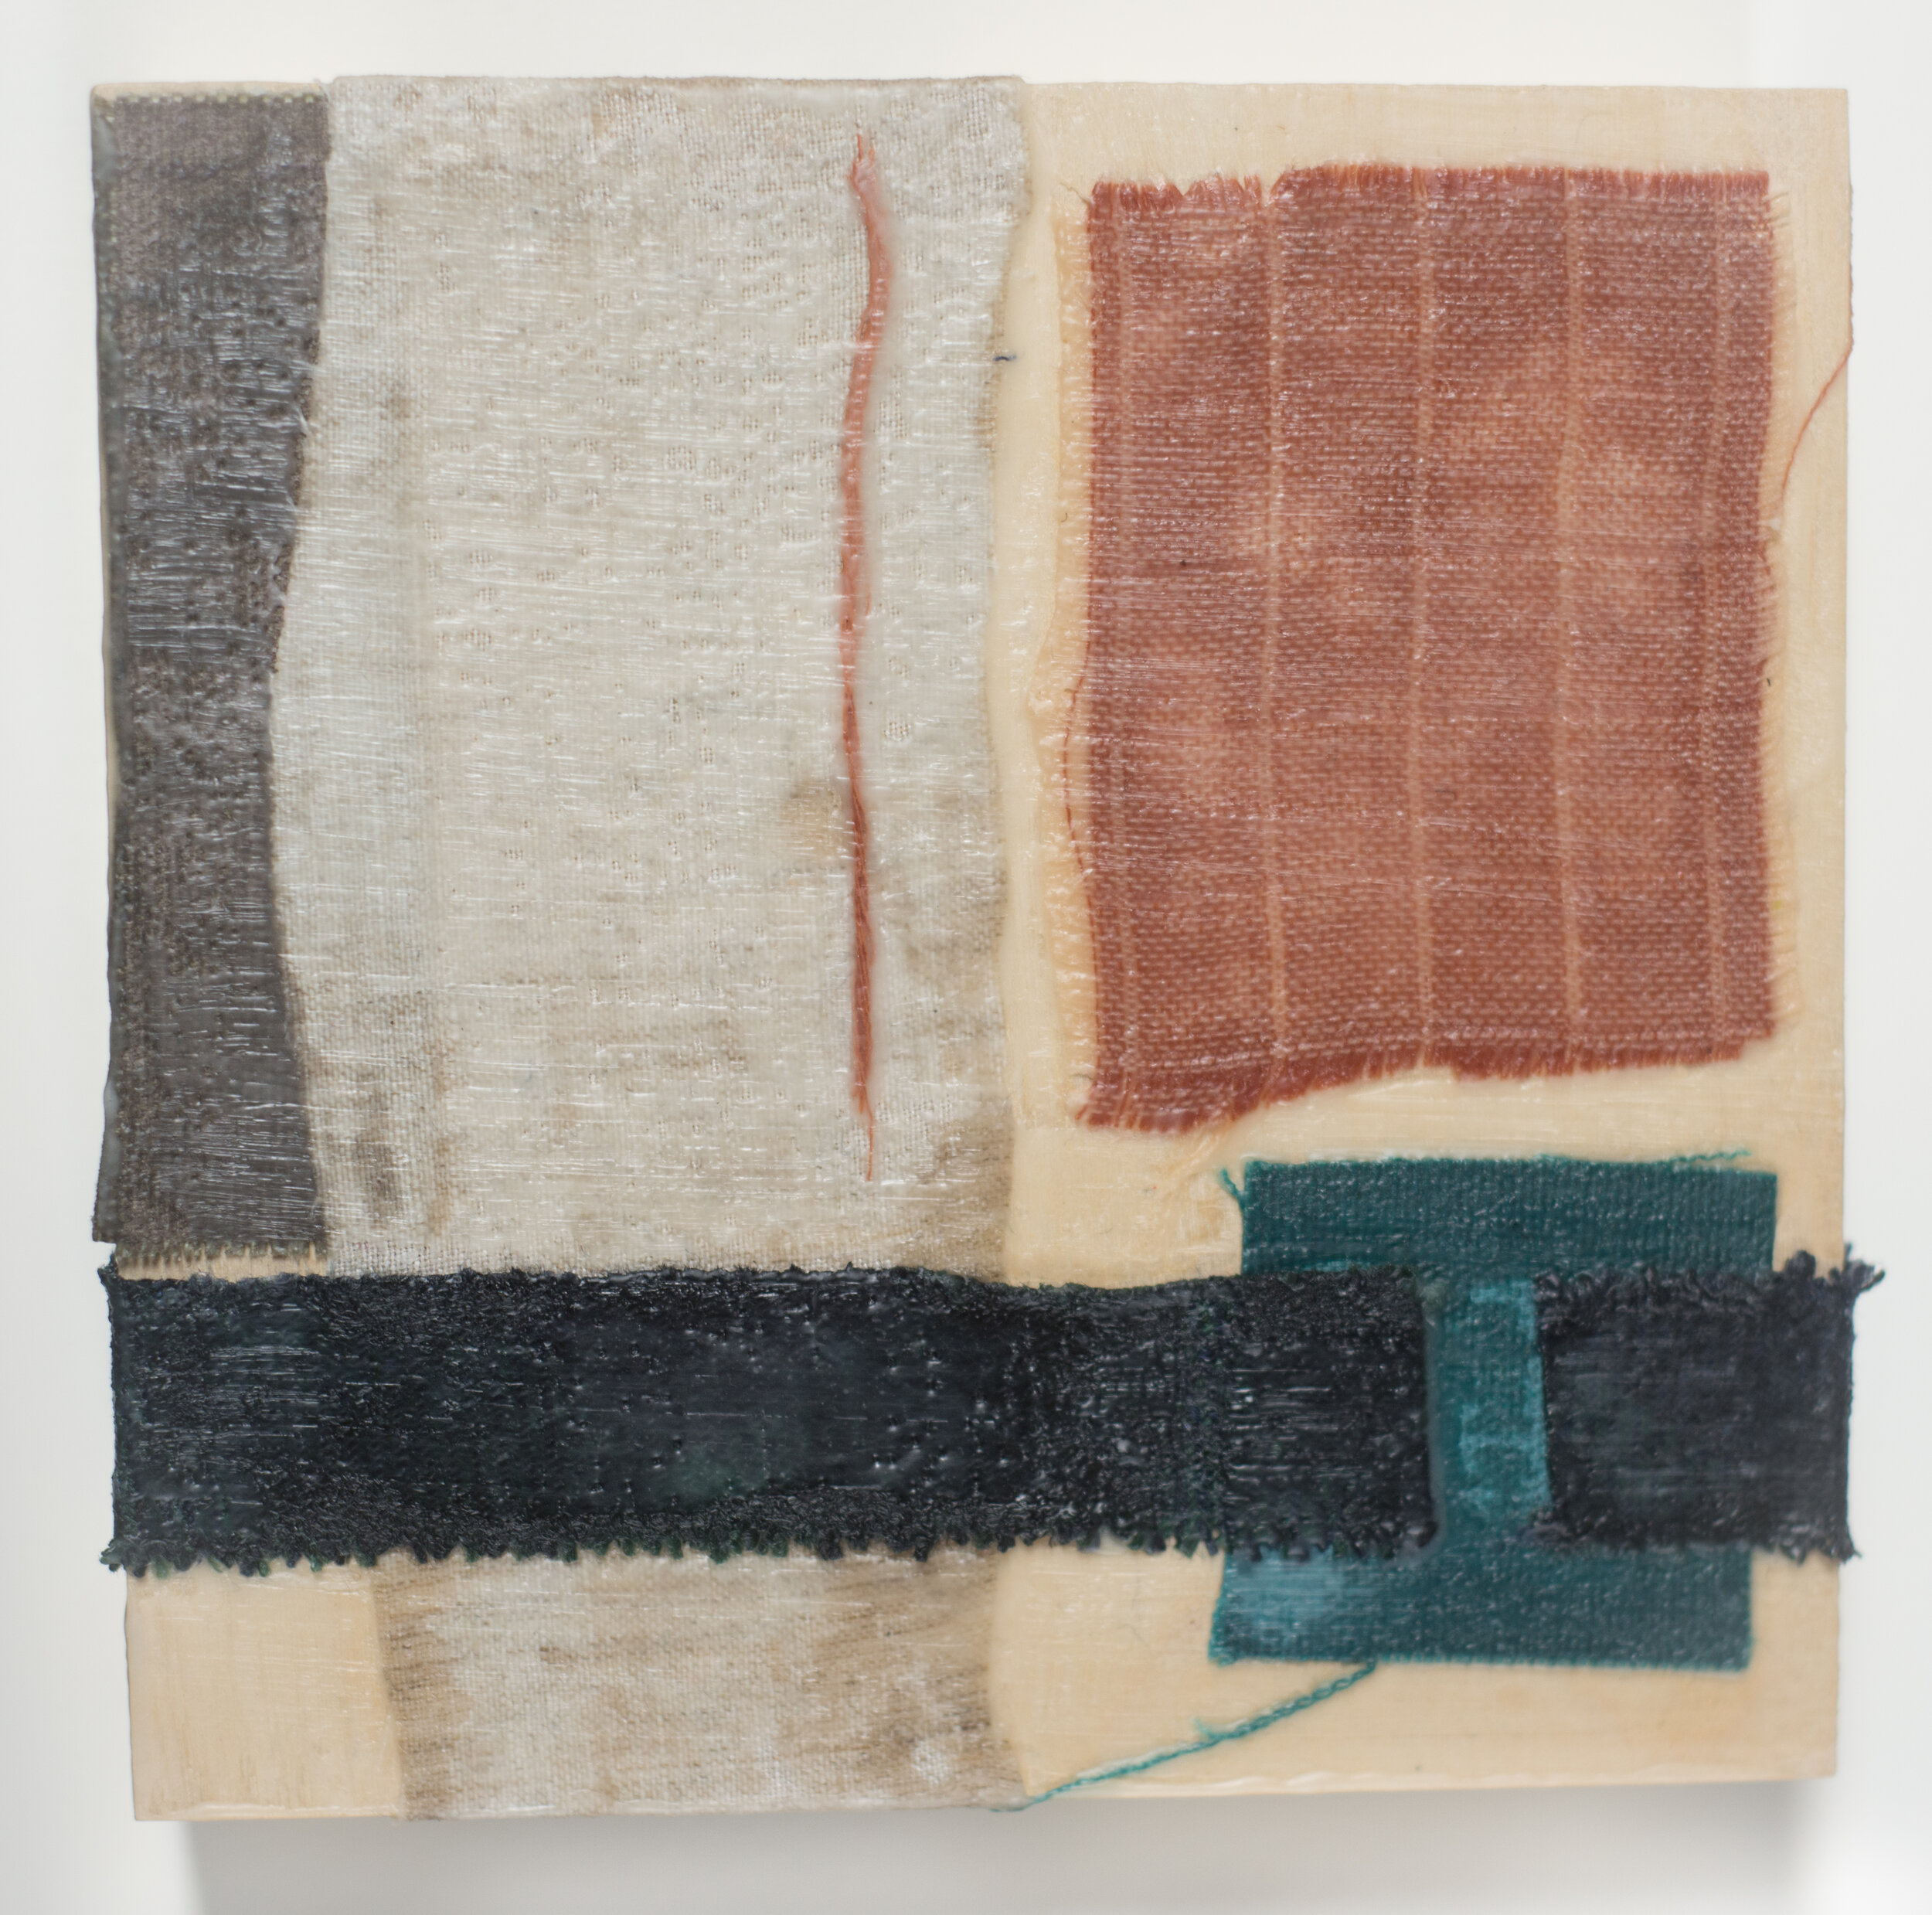 """Remnant #7  6""""x6"""", Encaustic & Fabric mounted on Birch Cradled Panel, 2019"""